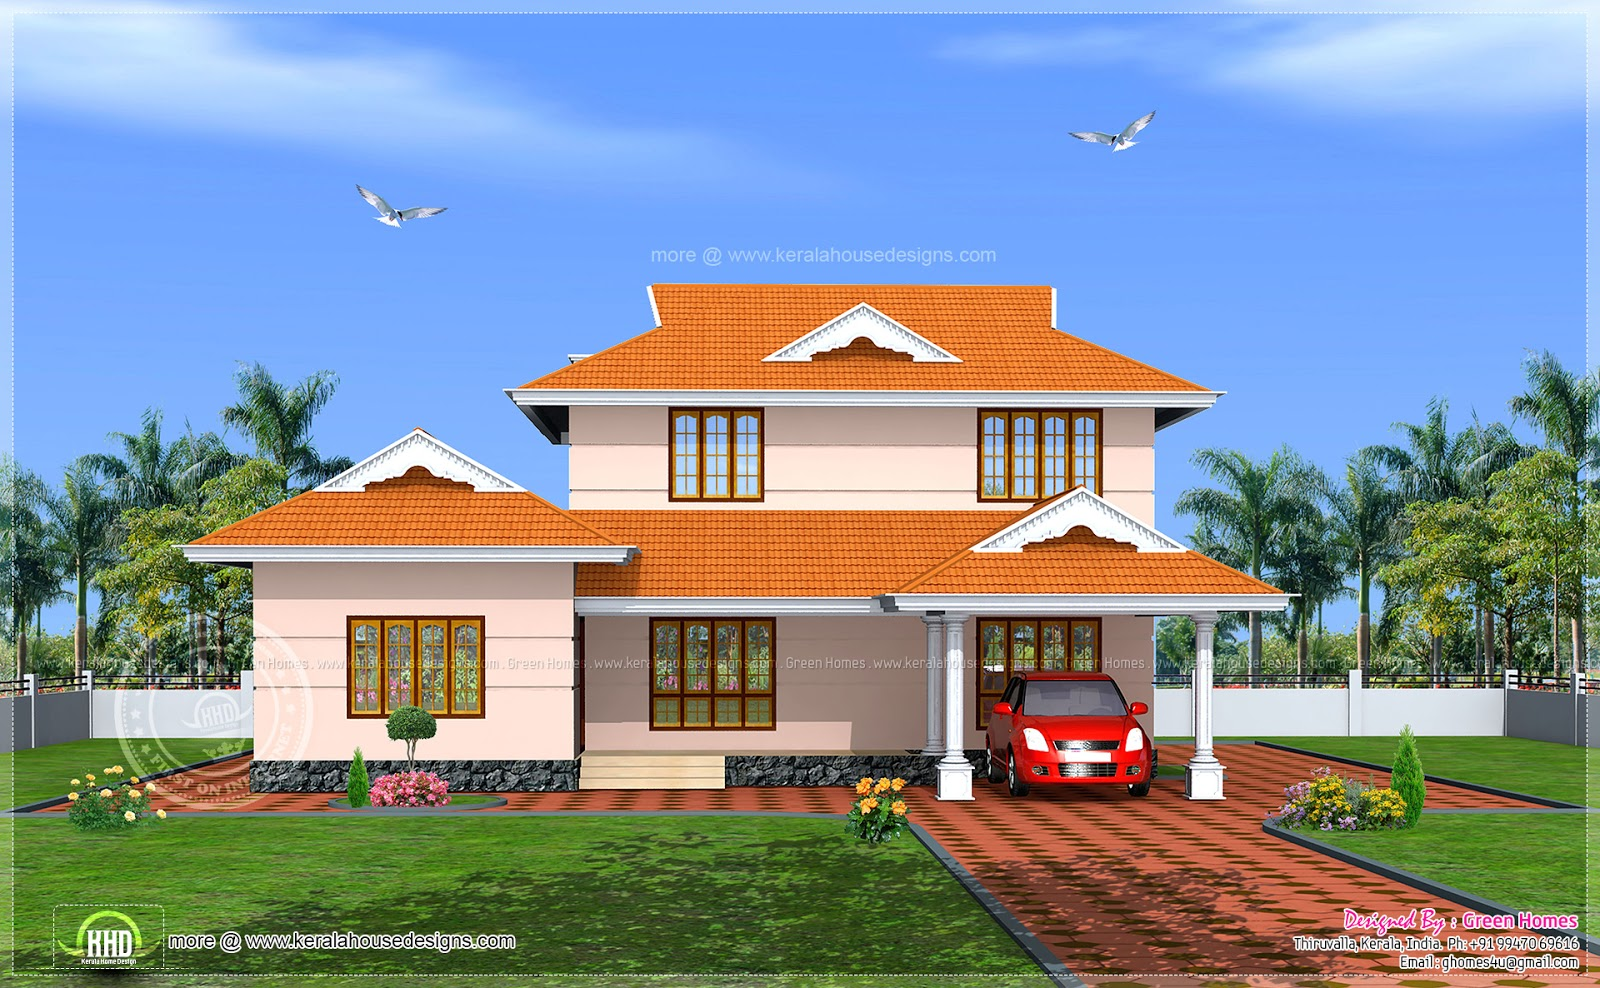 228 square meter Kerala model house exterior